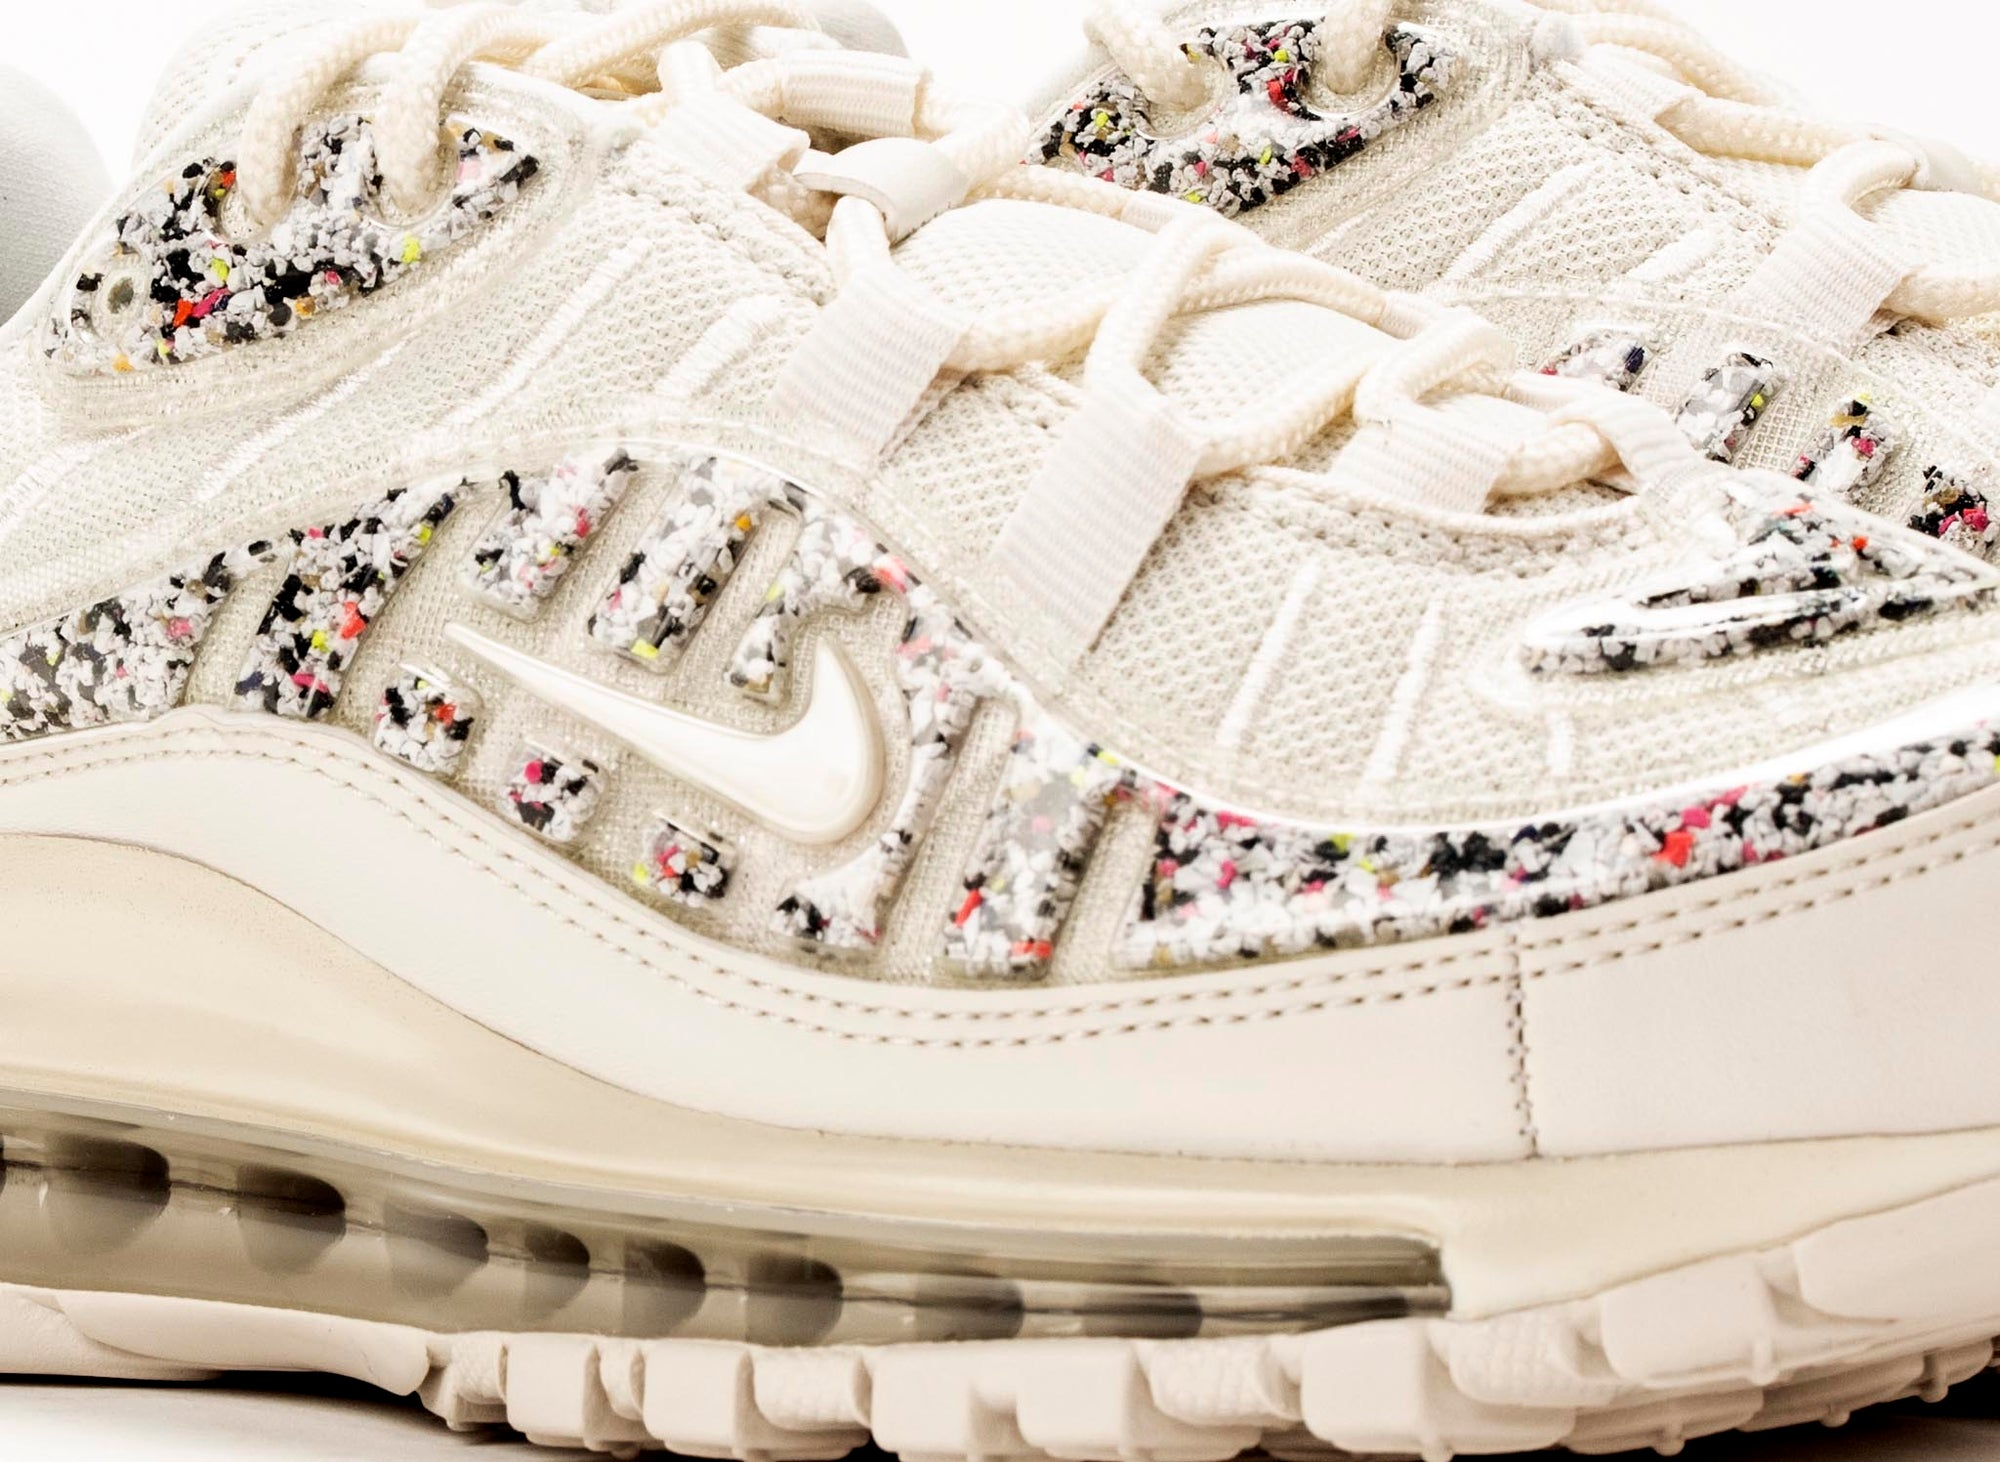 Nike Air Max 98 LX Women's 'Phantom' Oneness Boutique